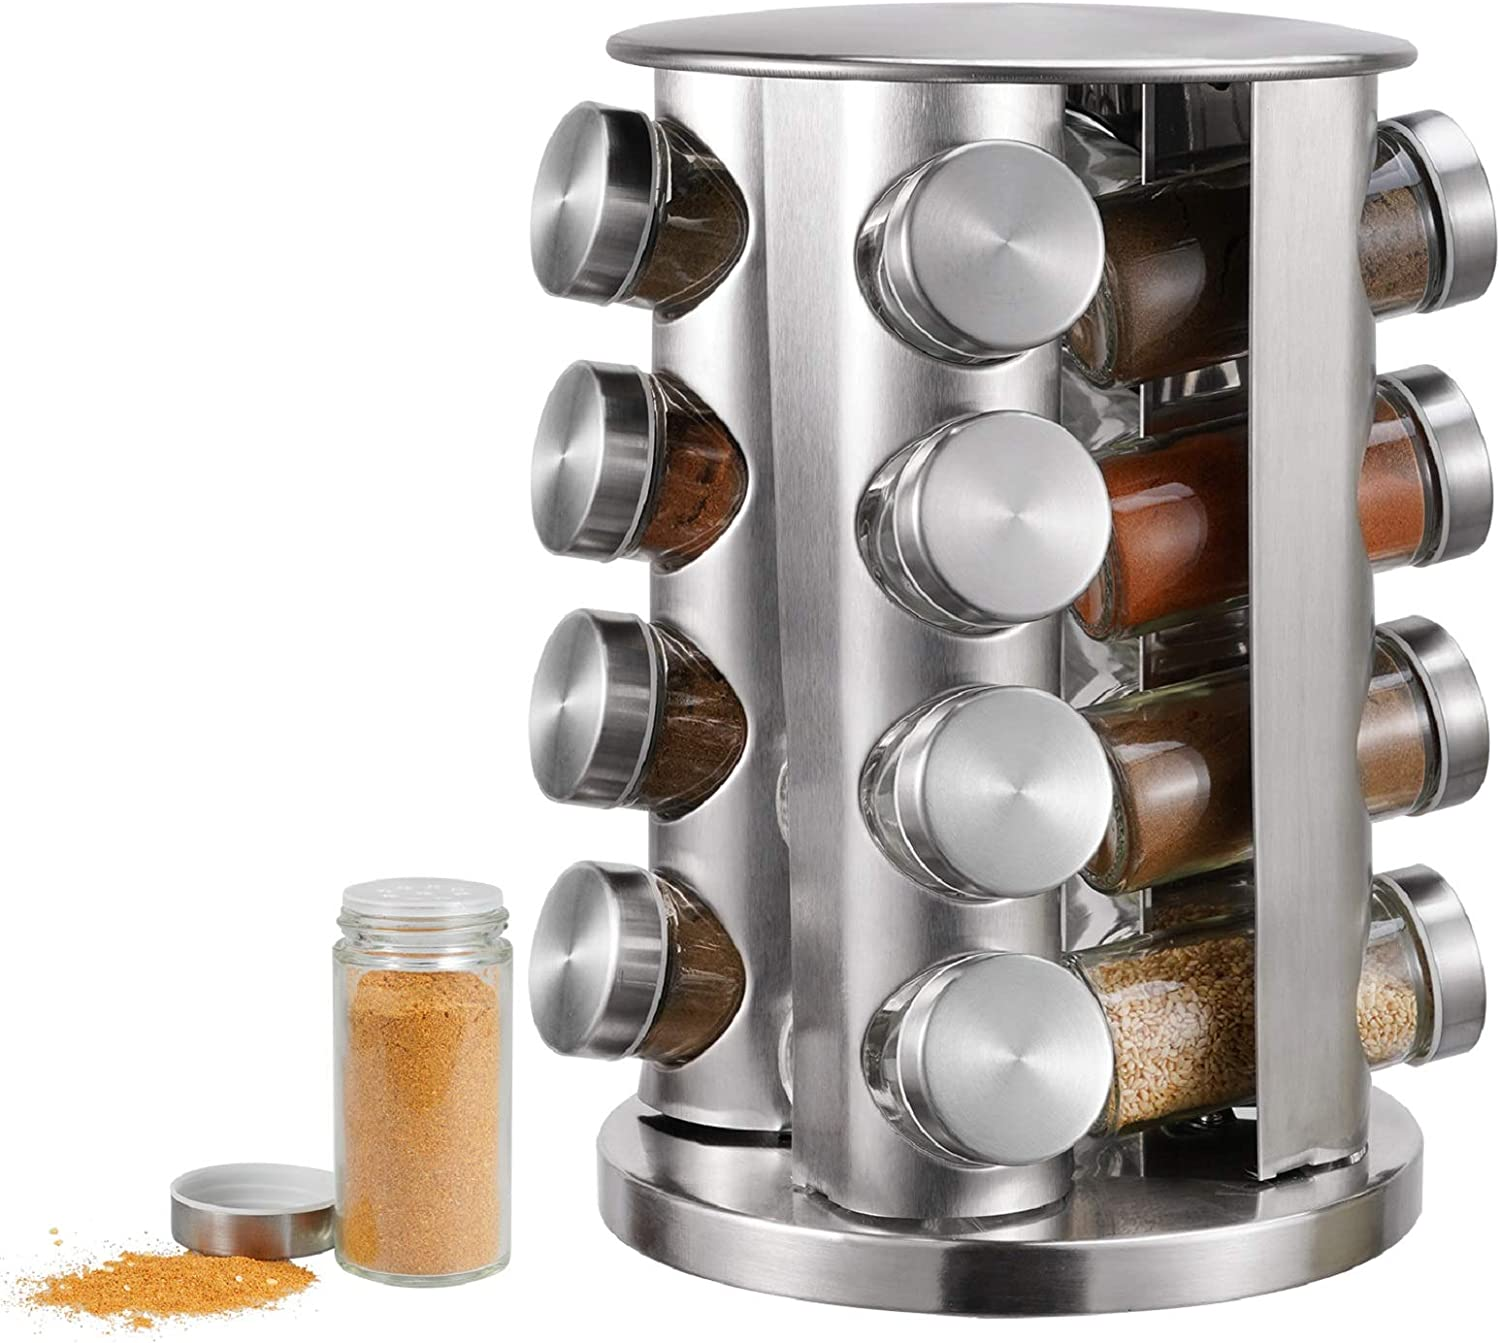 Spice Rack, kitchen rack with 16 Set of Spice Jars, Round Stainless Steel Spice Rack, Revolving Countertop Spice Rack tower, Carousel Seasoning Storage Organization for Home & Kitchen